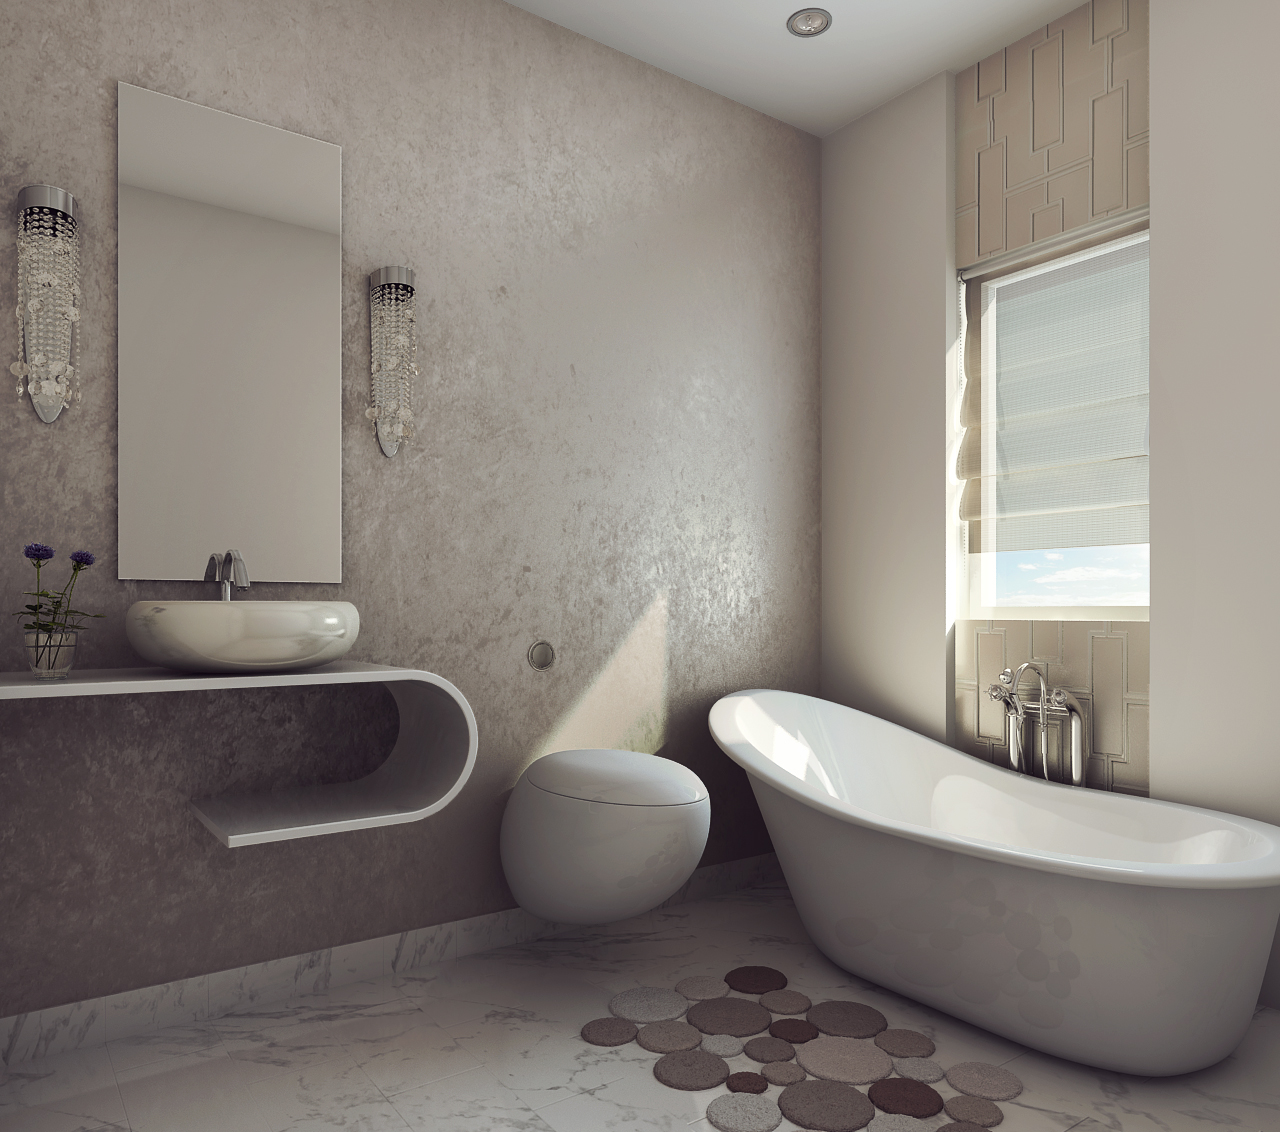 Modern earthy design bath room free 3d model max for 3d bathroom decor